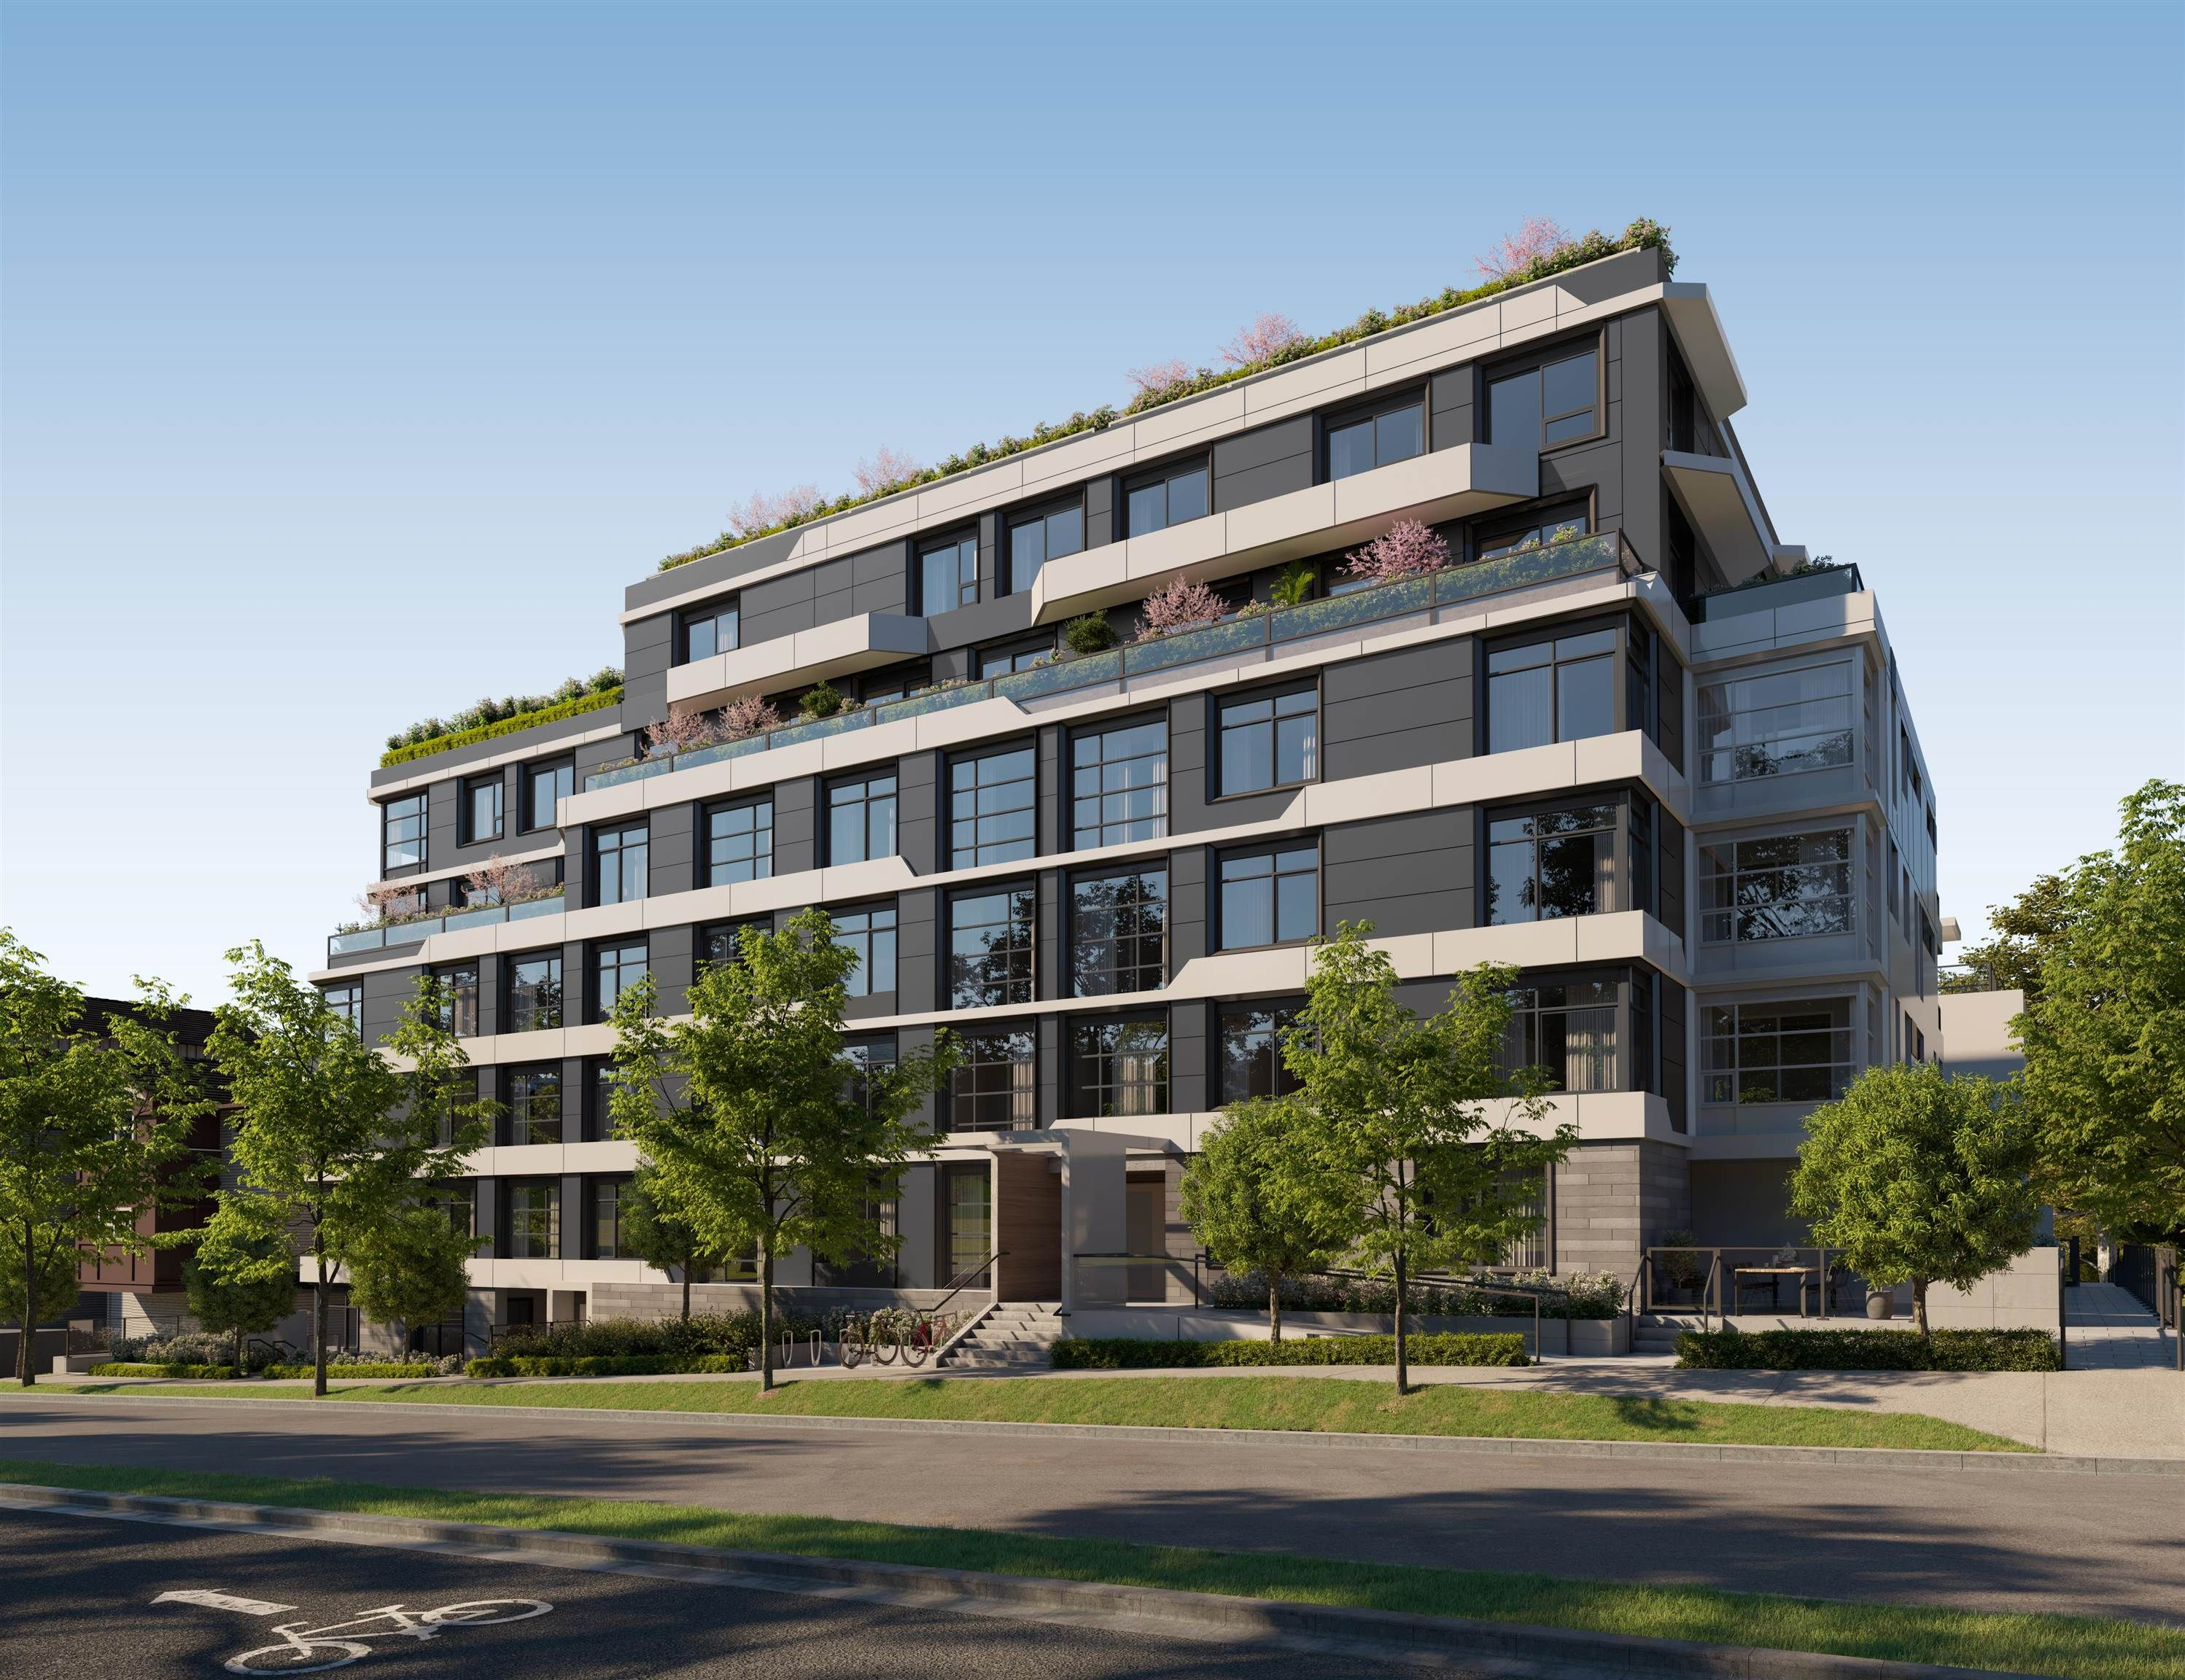 """Main Photo: 509 3264 VANNESS Avenue in Vancouver: Collingwood VE Condo for sale in """"Clive at Collingwood"""" (Vancouver East)  : MLS®# R2625635"""